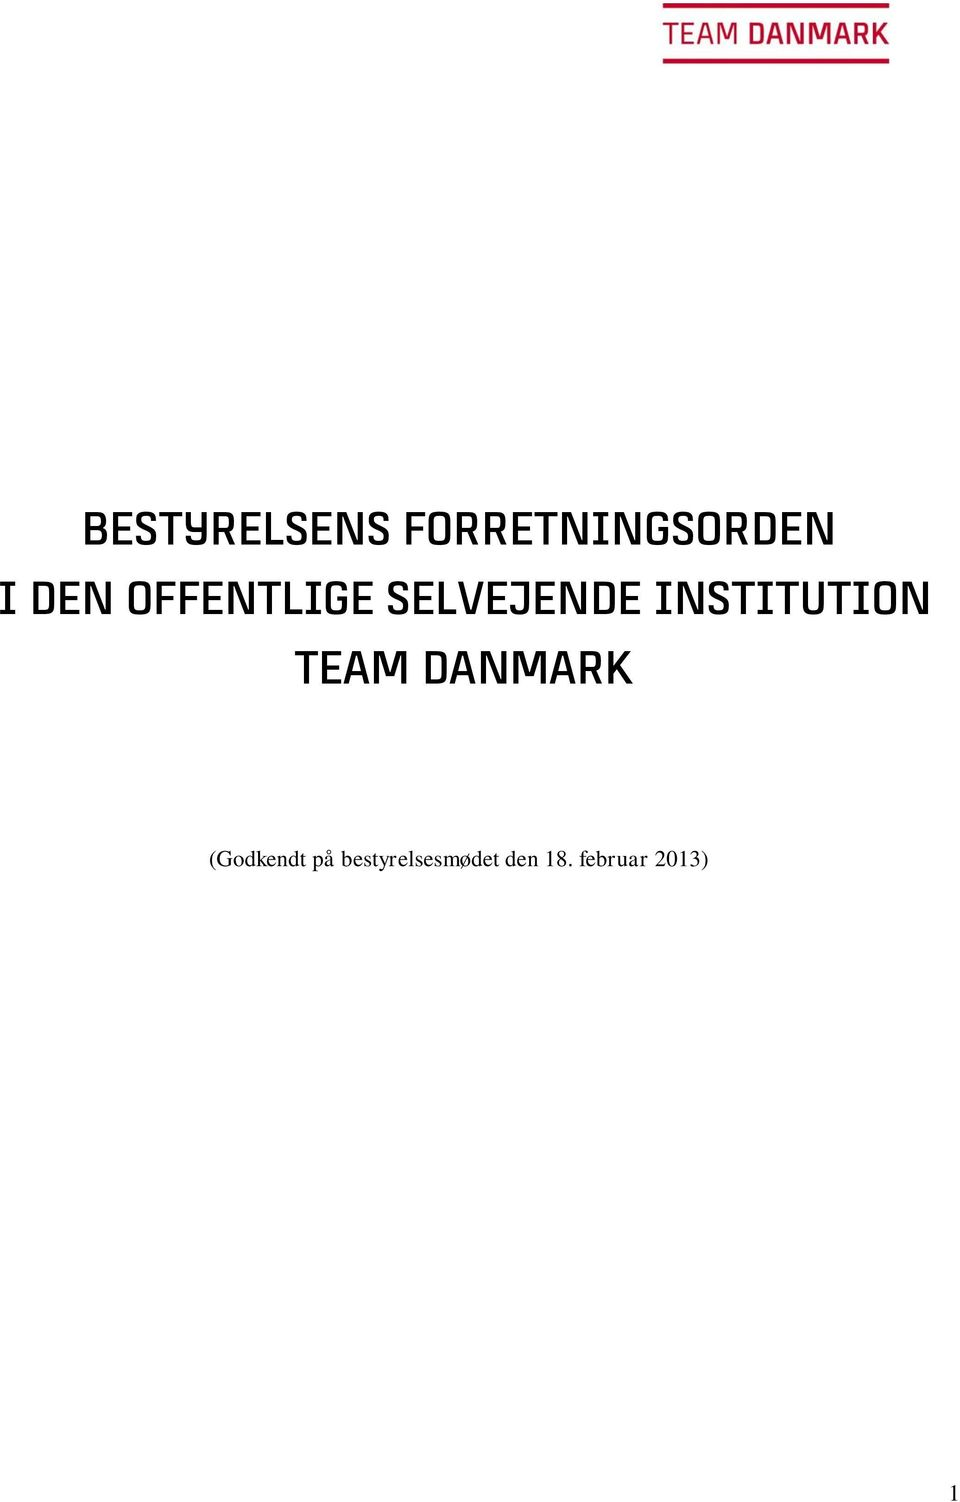 INSTITUTION TEAM DANMARK